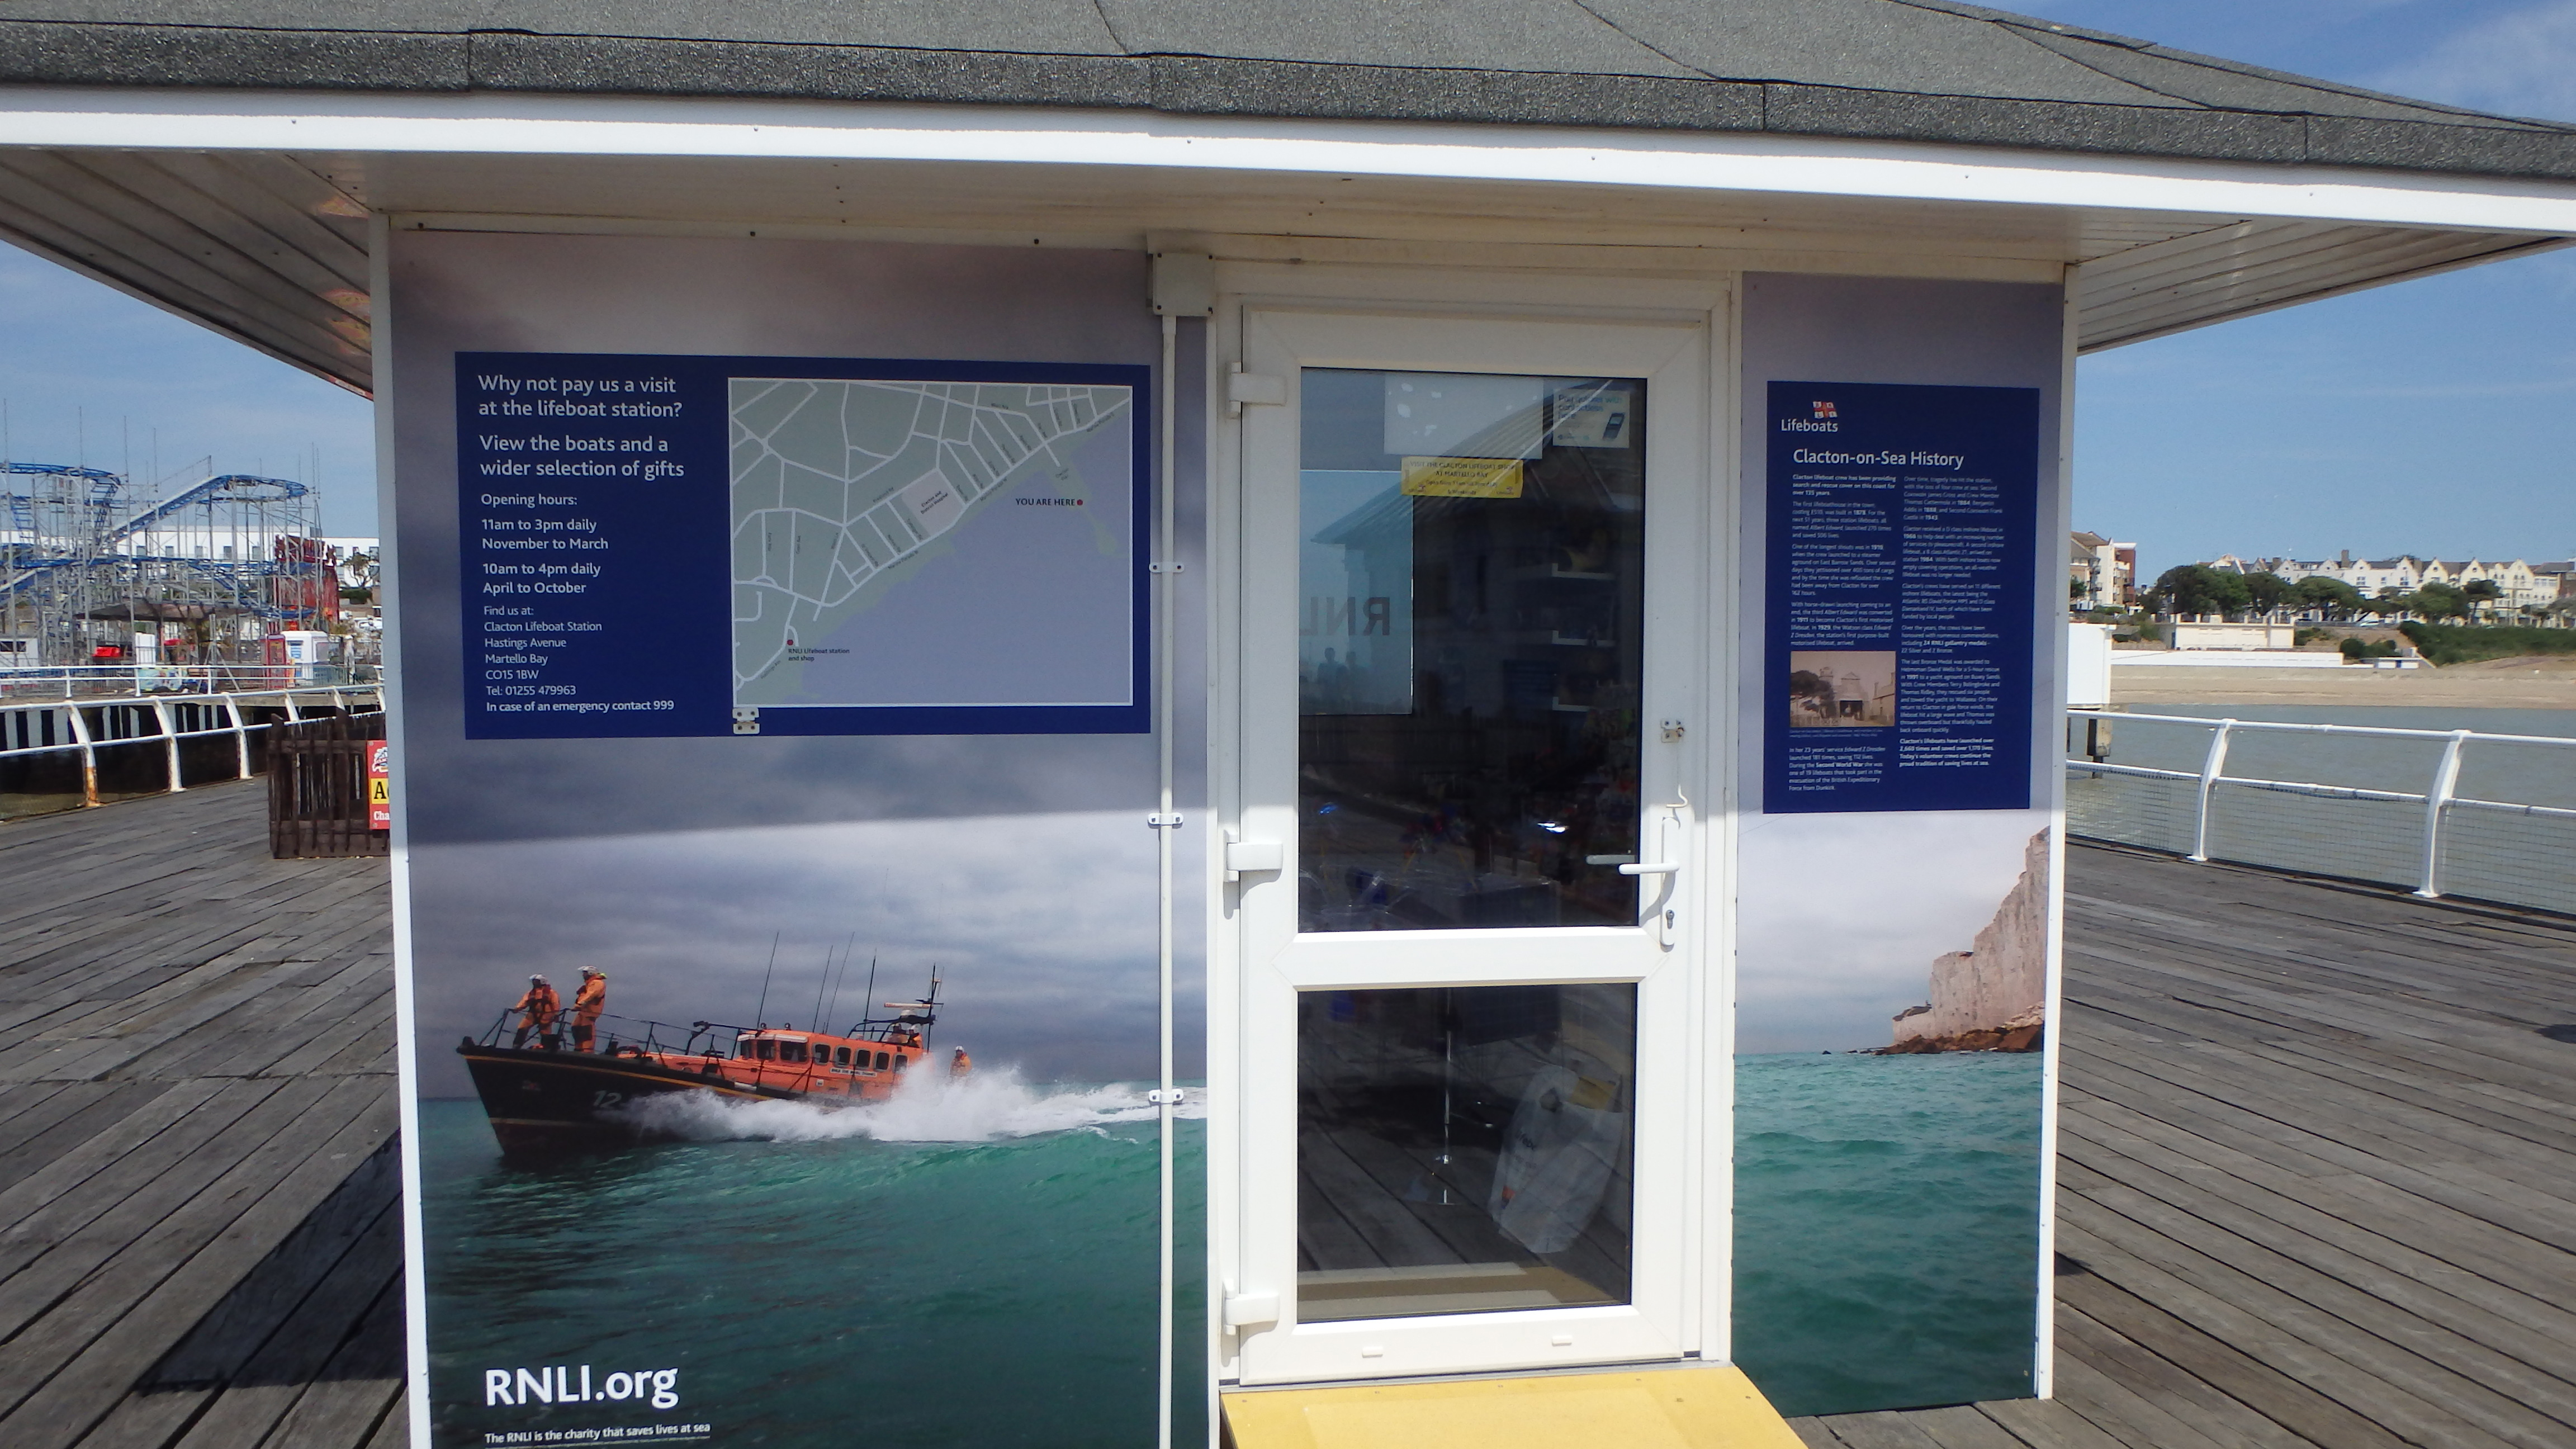 Buy RNLI gifts and souvenirs from our Clacton Pier shop and help save lives at sea.